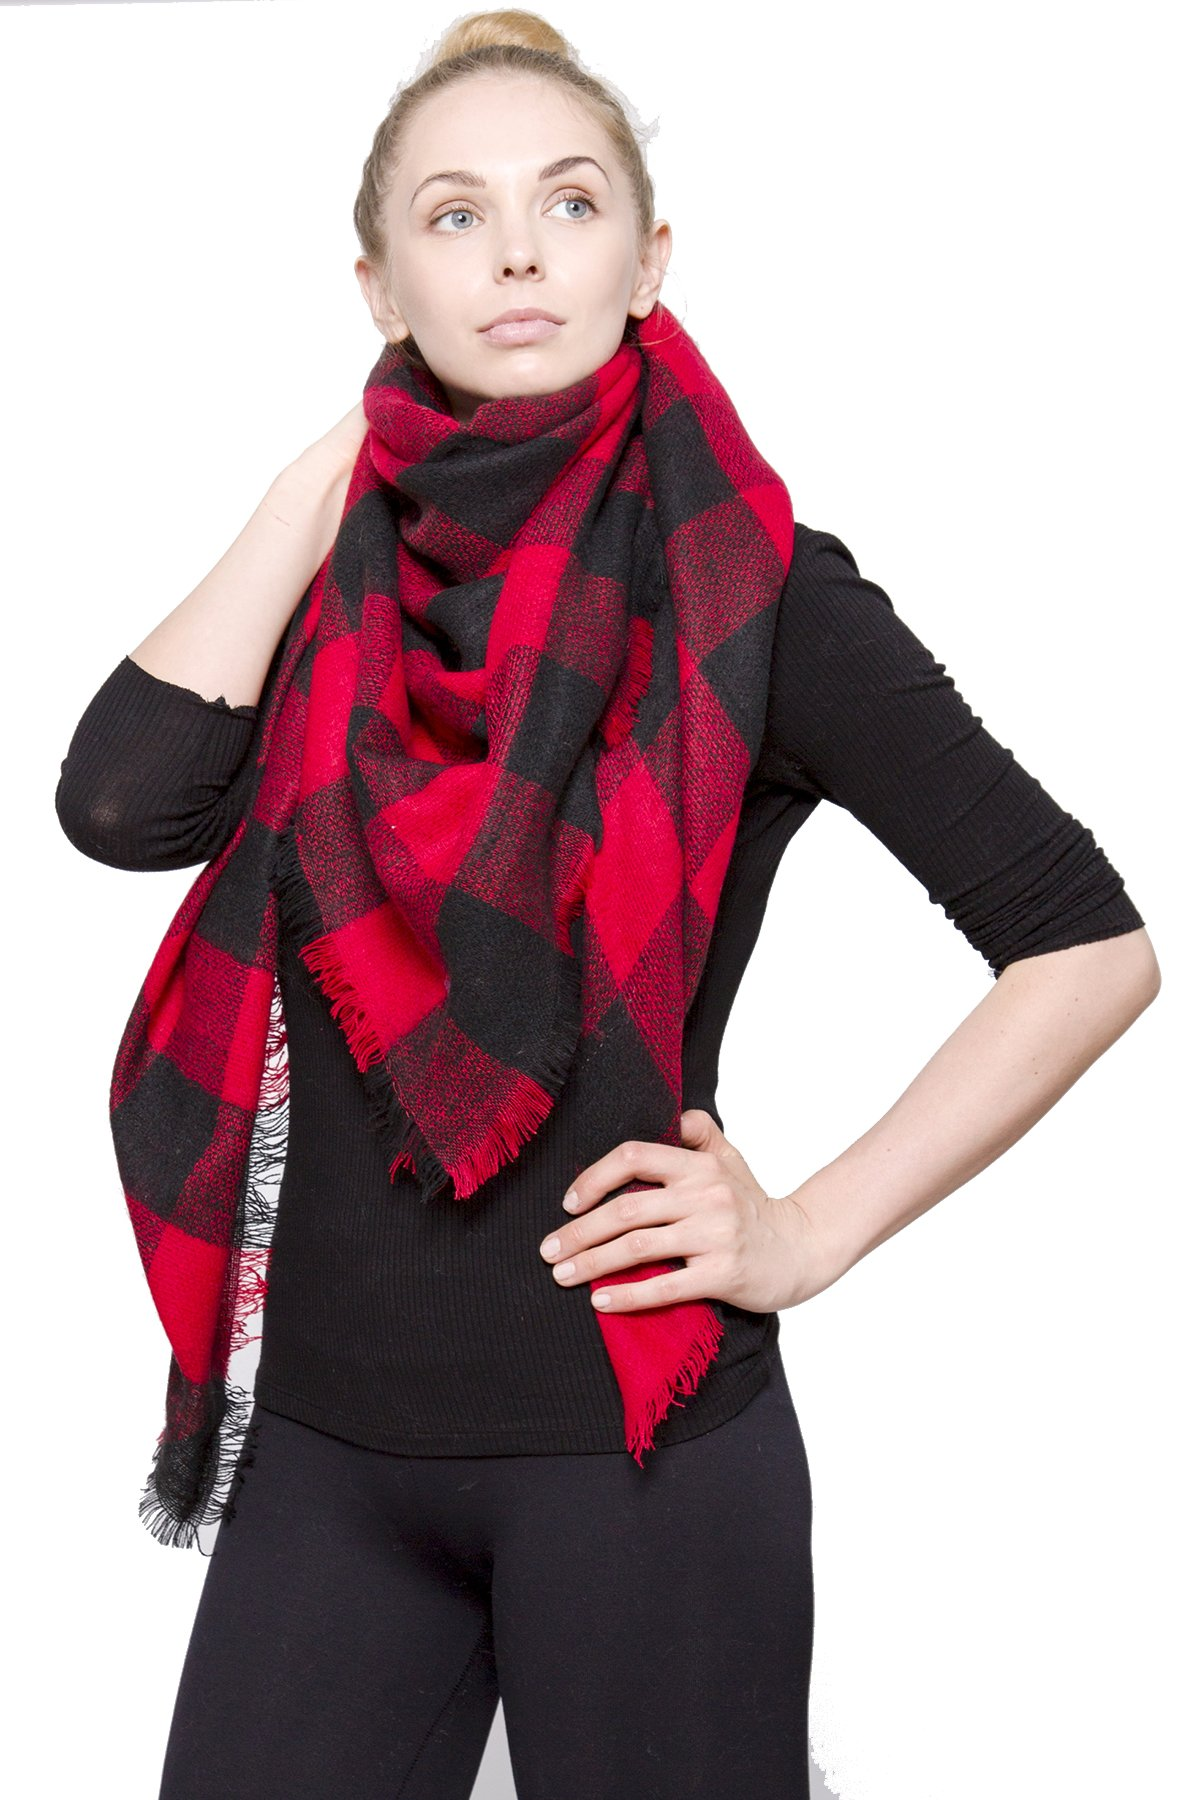 BYOS Women Winter Versatile Chic Tartan Plaid Oversized Blanket Scarf Wrap Shawl (Bold Gingham Check Red & Black)